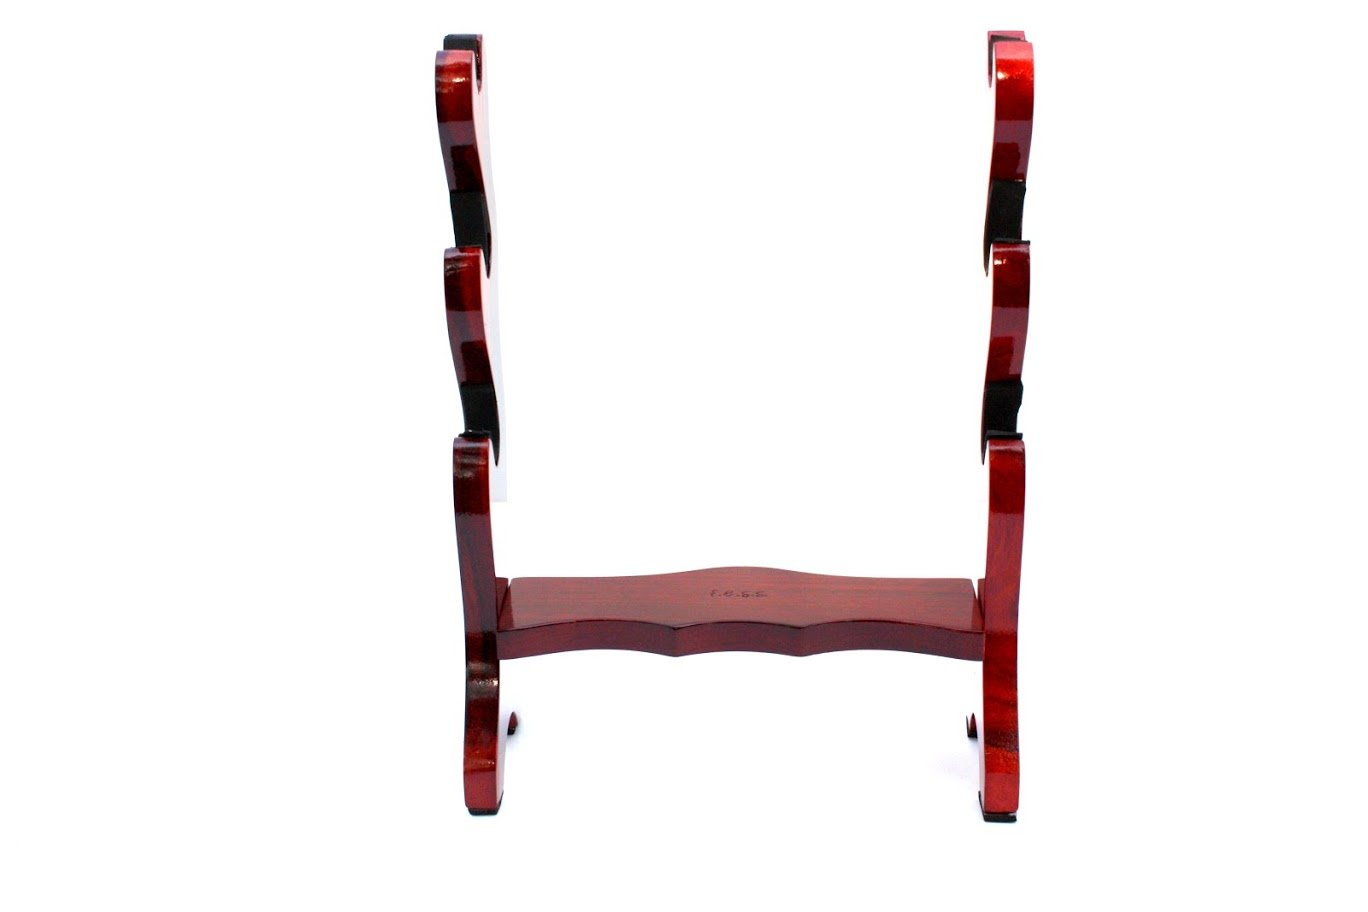 F.e.s.s. Churchwarden Tobacco Pipe Stand Furniture 3 Tier Rack for 3 Pipe Stand by F.E.S.S.